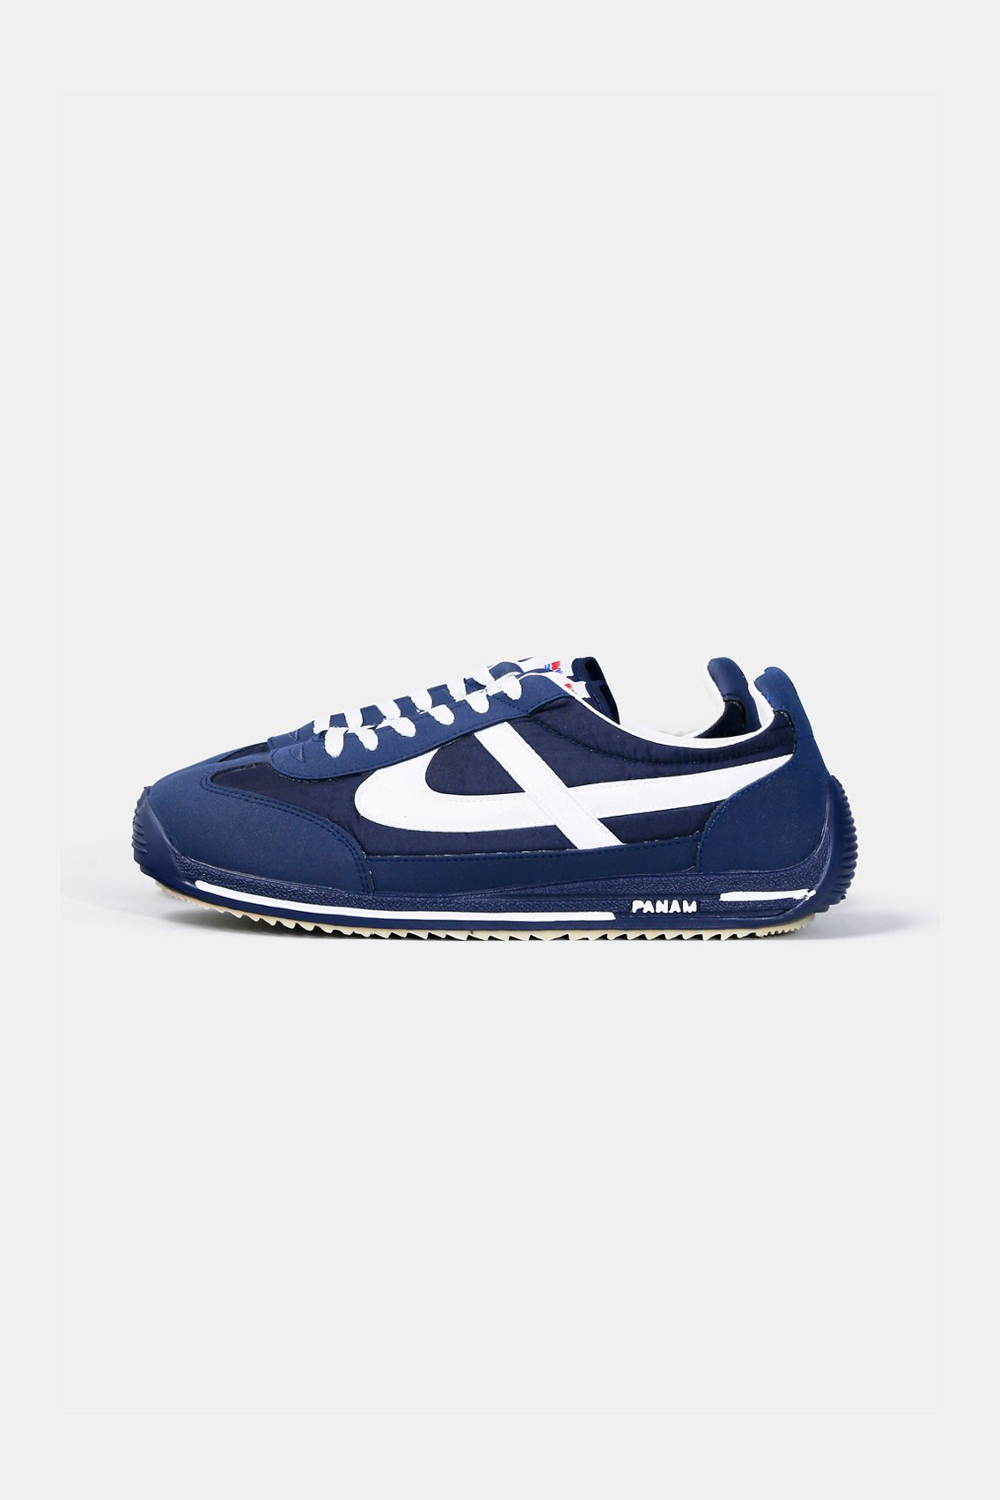 PANAM Classic Jogger Shoes (Navy)